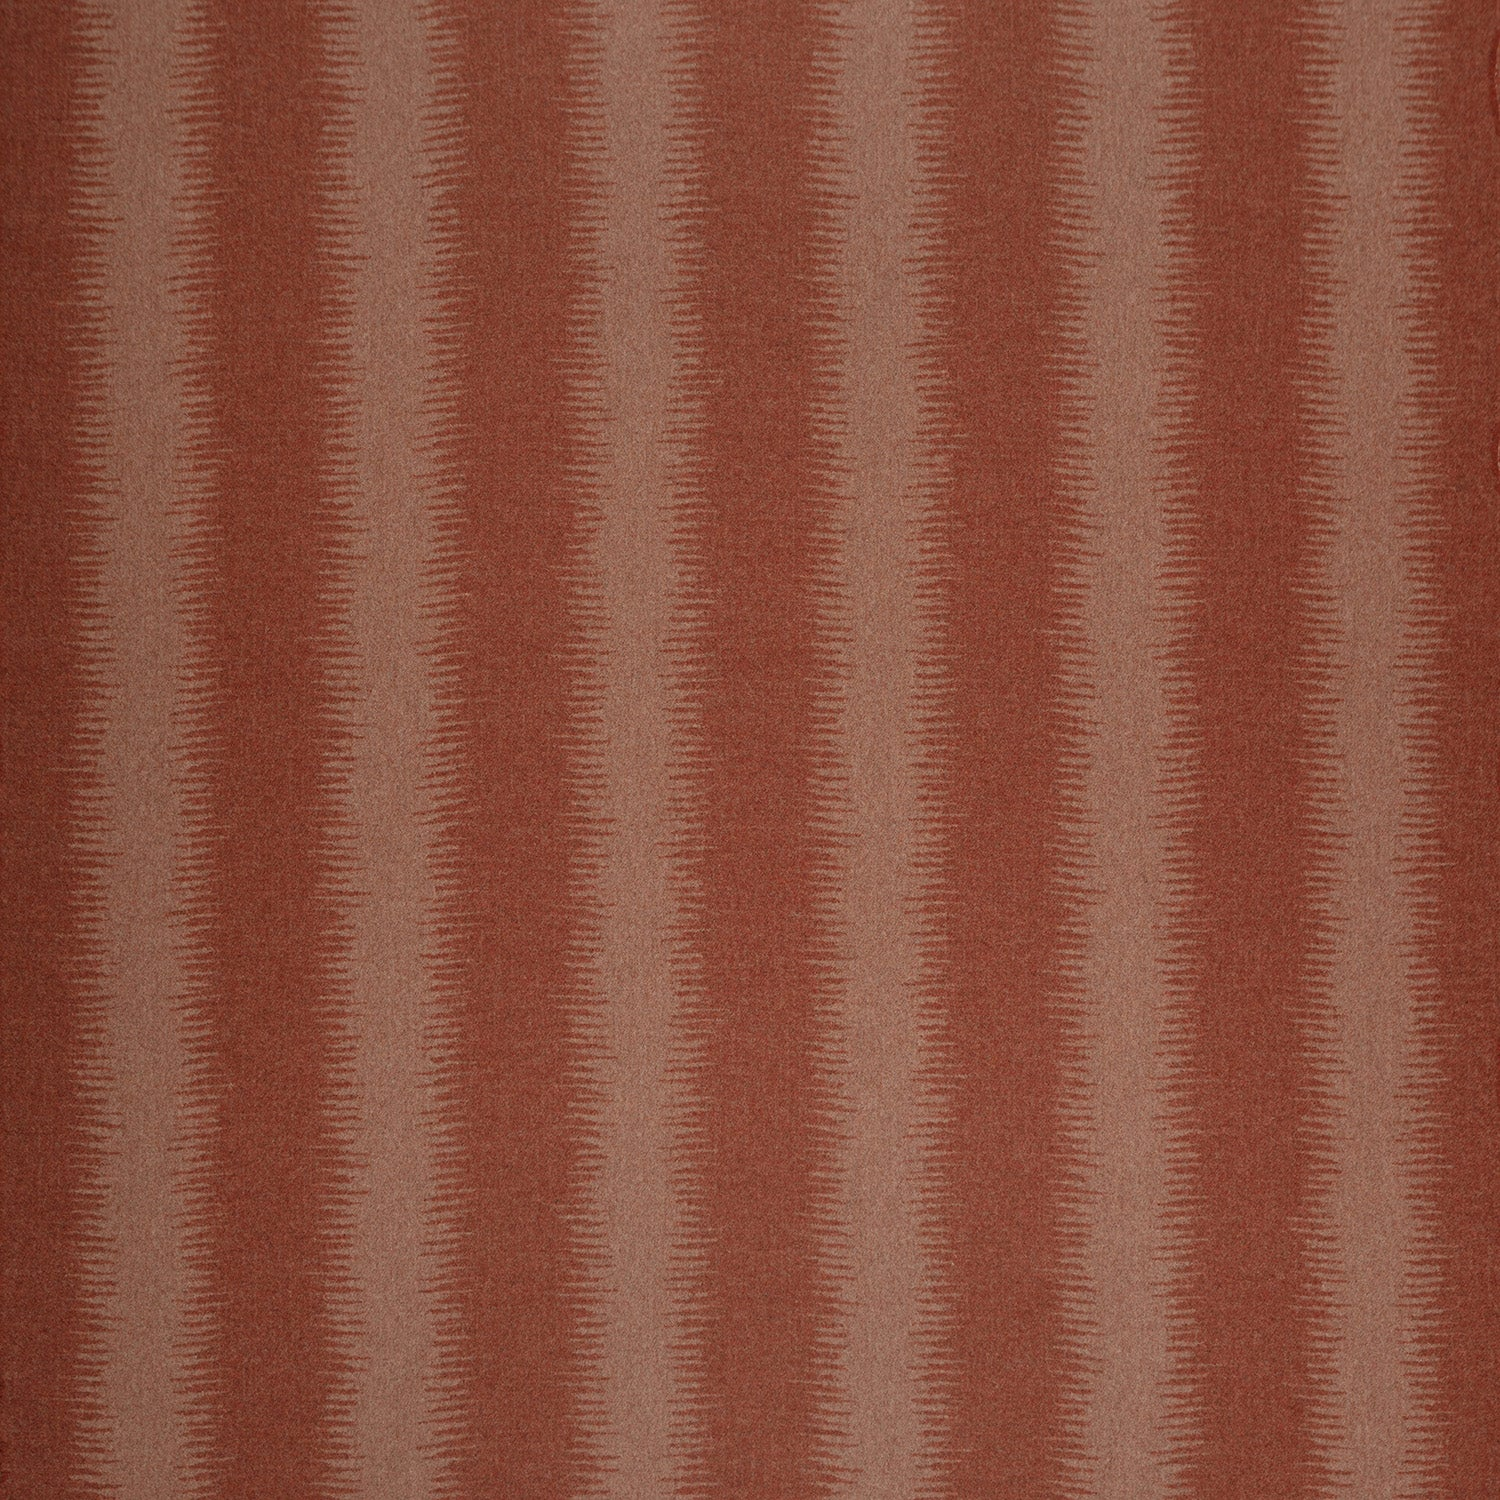 Fabric swatch of a terracotta wool fabric with a lighter stripe, suitable for curtains and upholstery